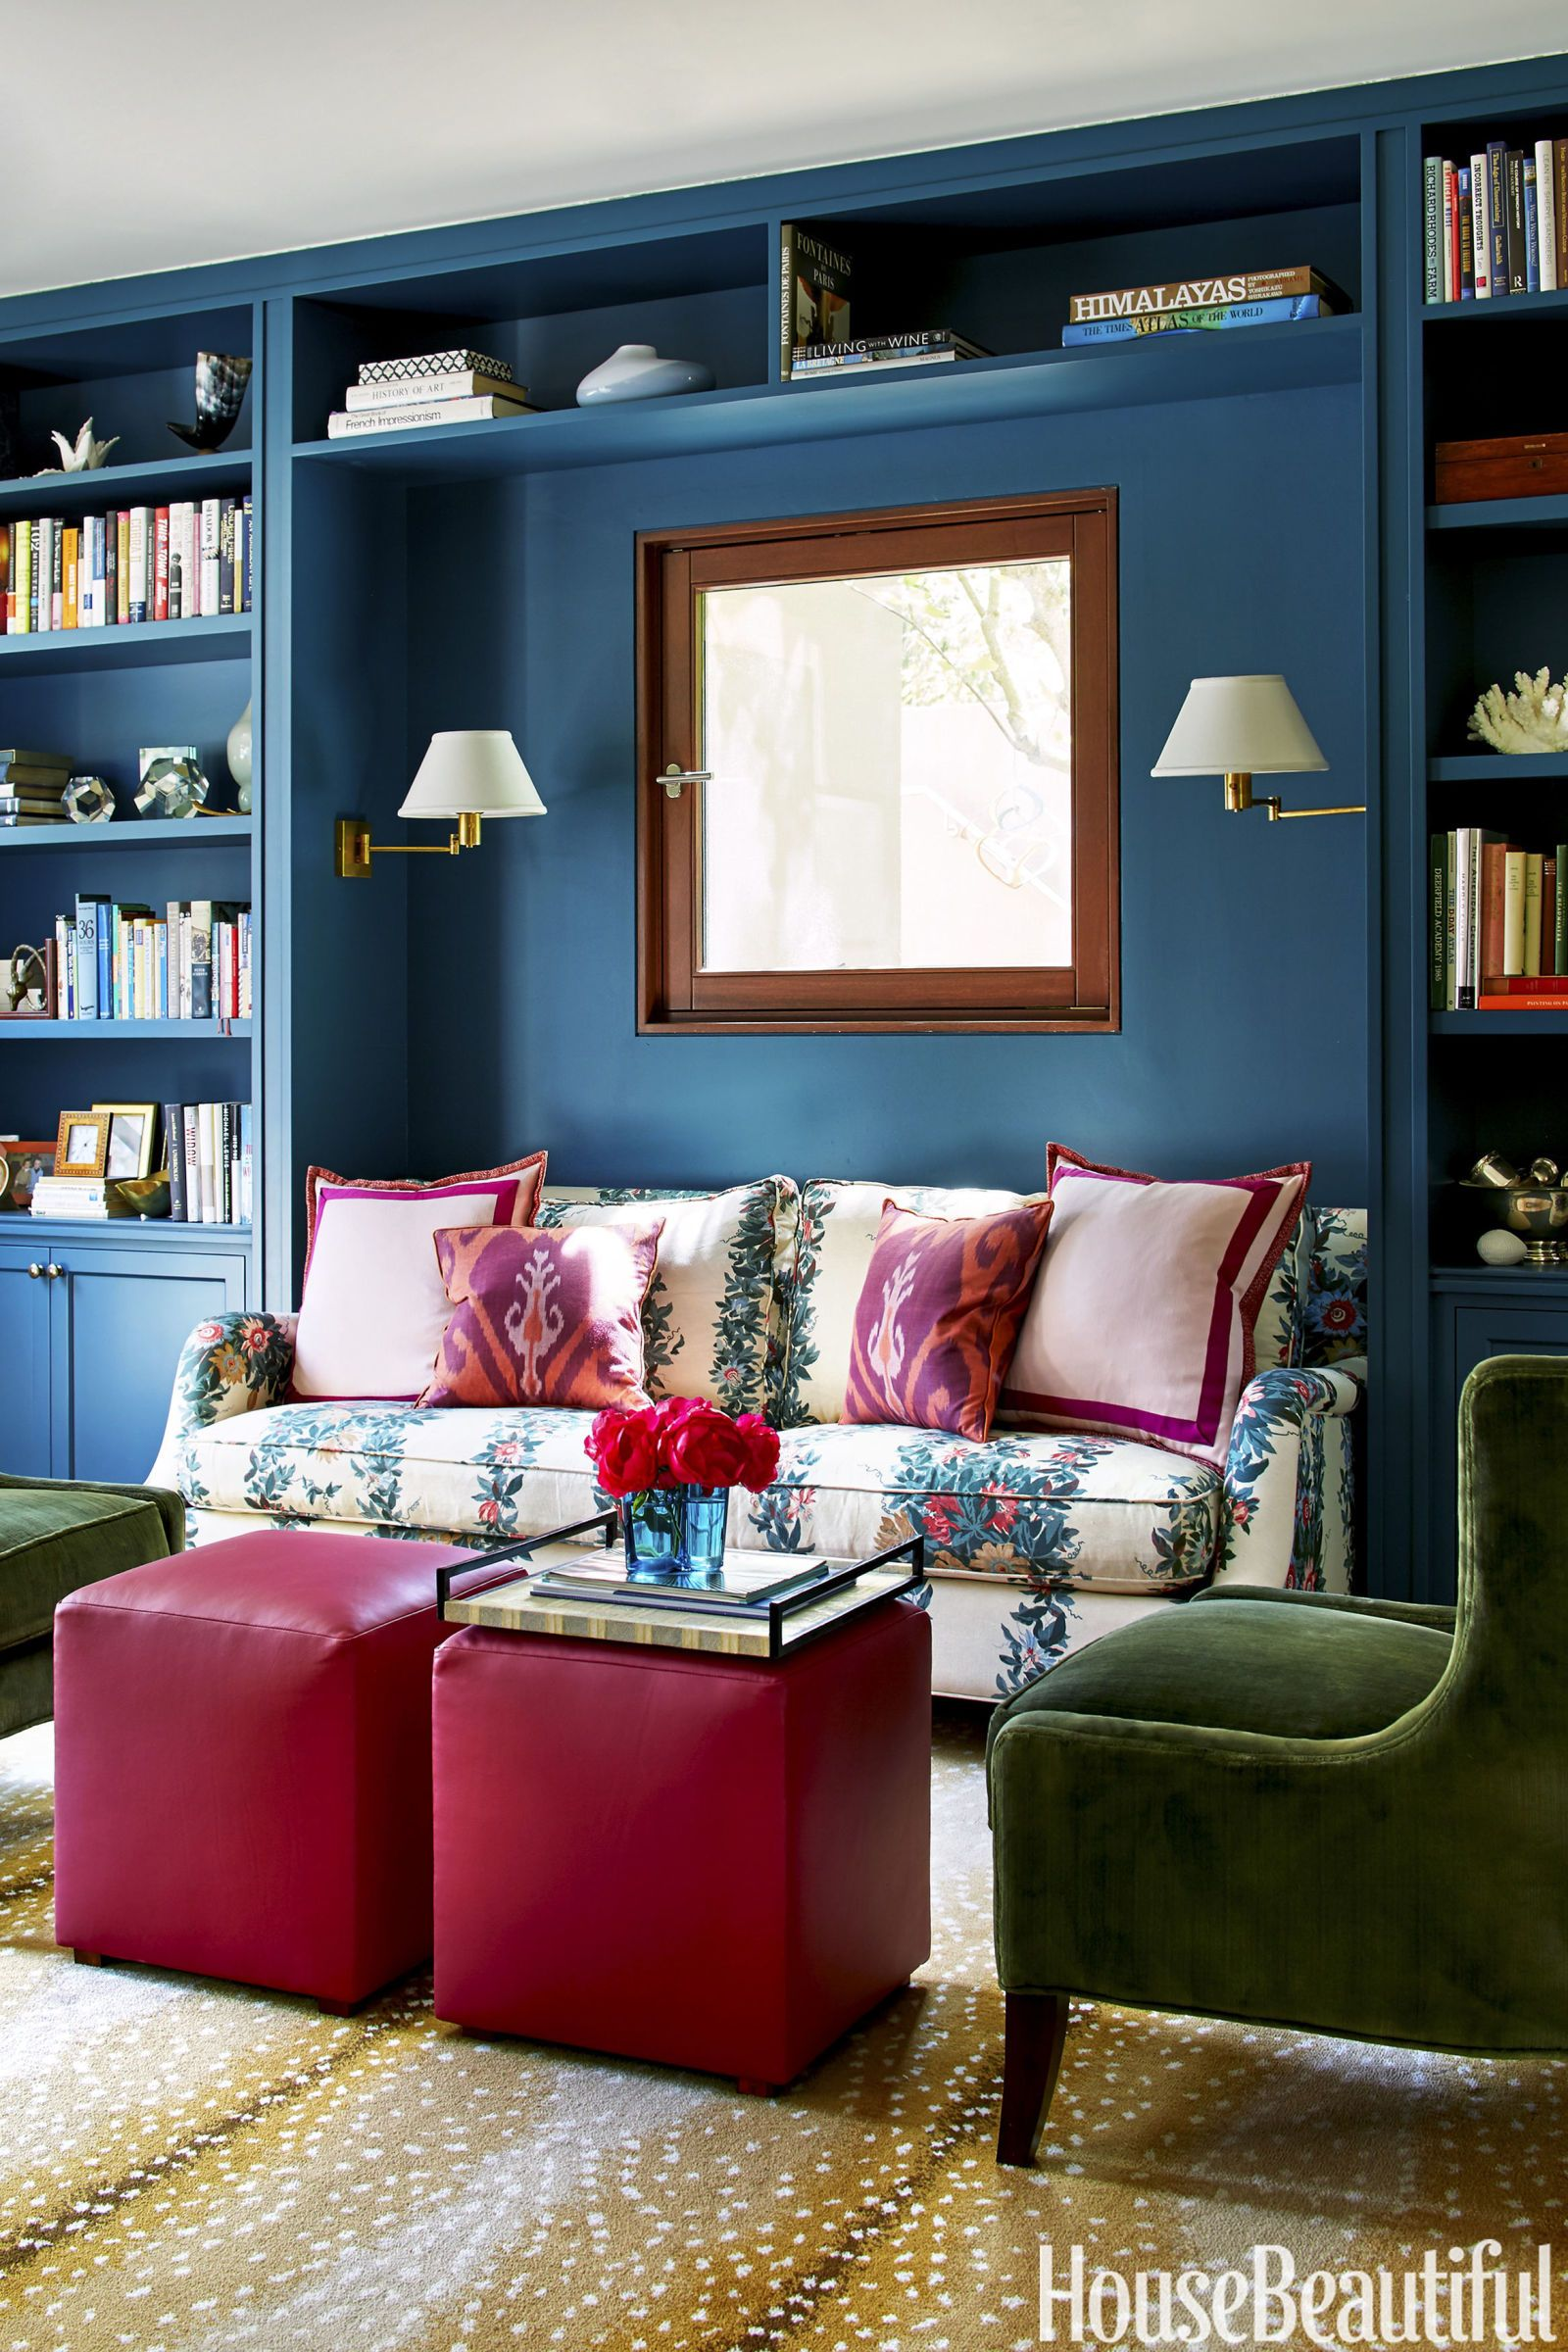 Pink Is The Missing Piece From Red White And Blue Decor